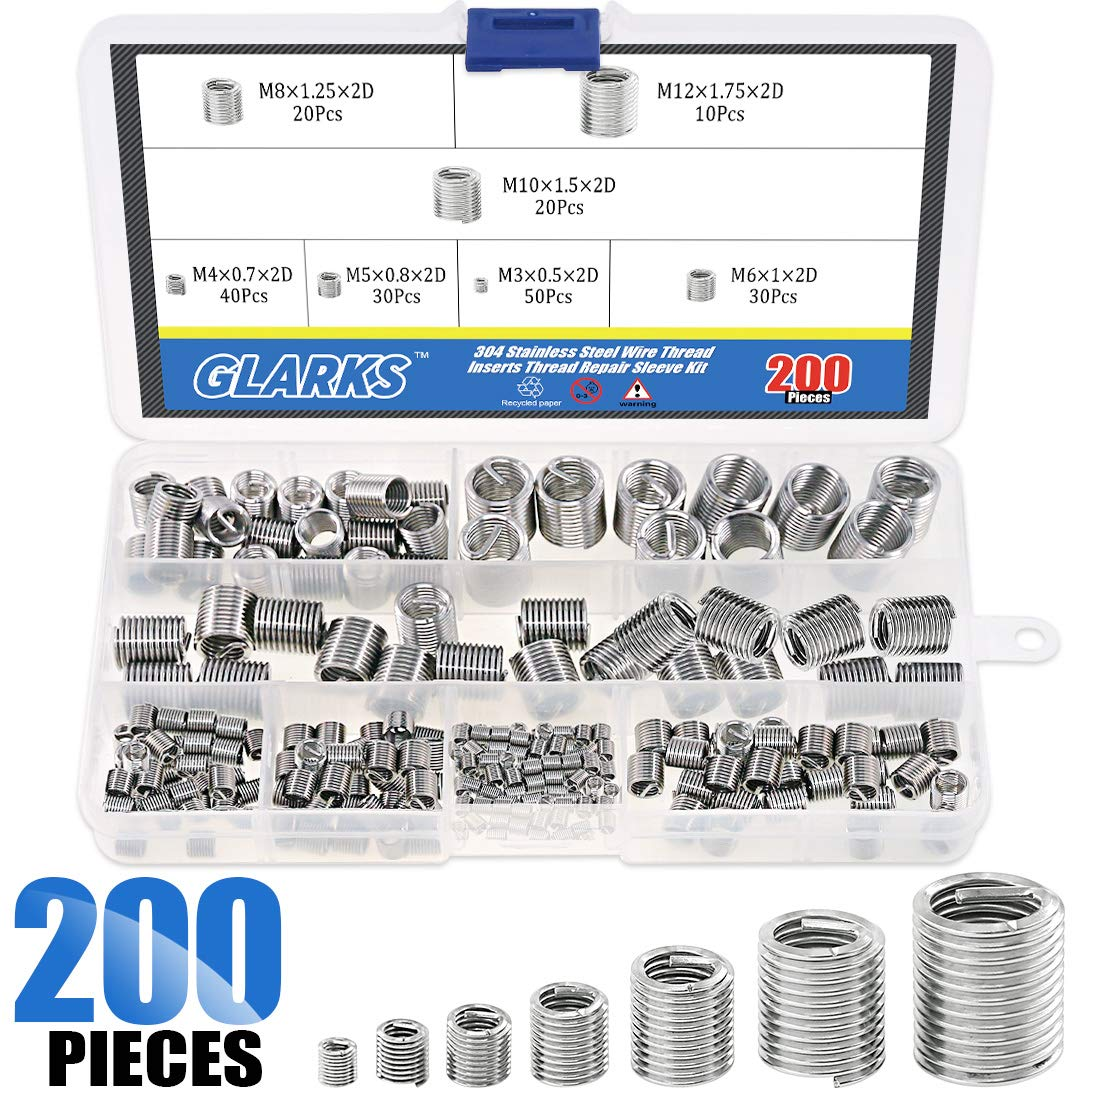 Glarks 200Pcs Wire Inserts Screws Sleeve Assortment Kit, 304 Stainless Steel Metric M3 M4 M5 M6 M8 M10 M12 Wire Thread Inserts Helical Type Coiled Wire Screw Repair Sleeve for Automotive Repairs by Glarks